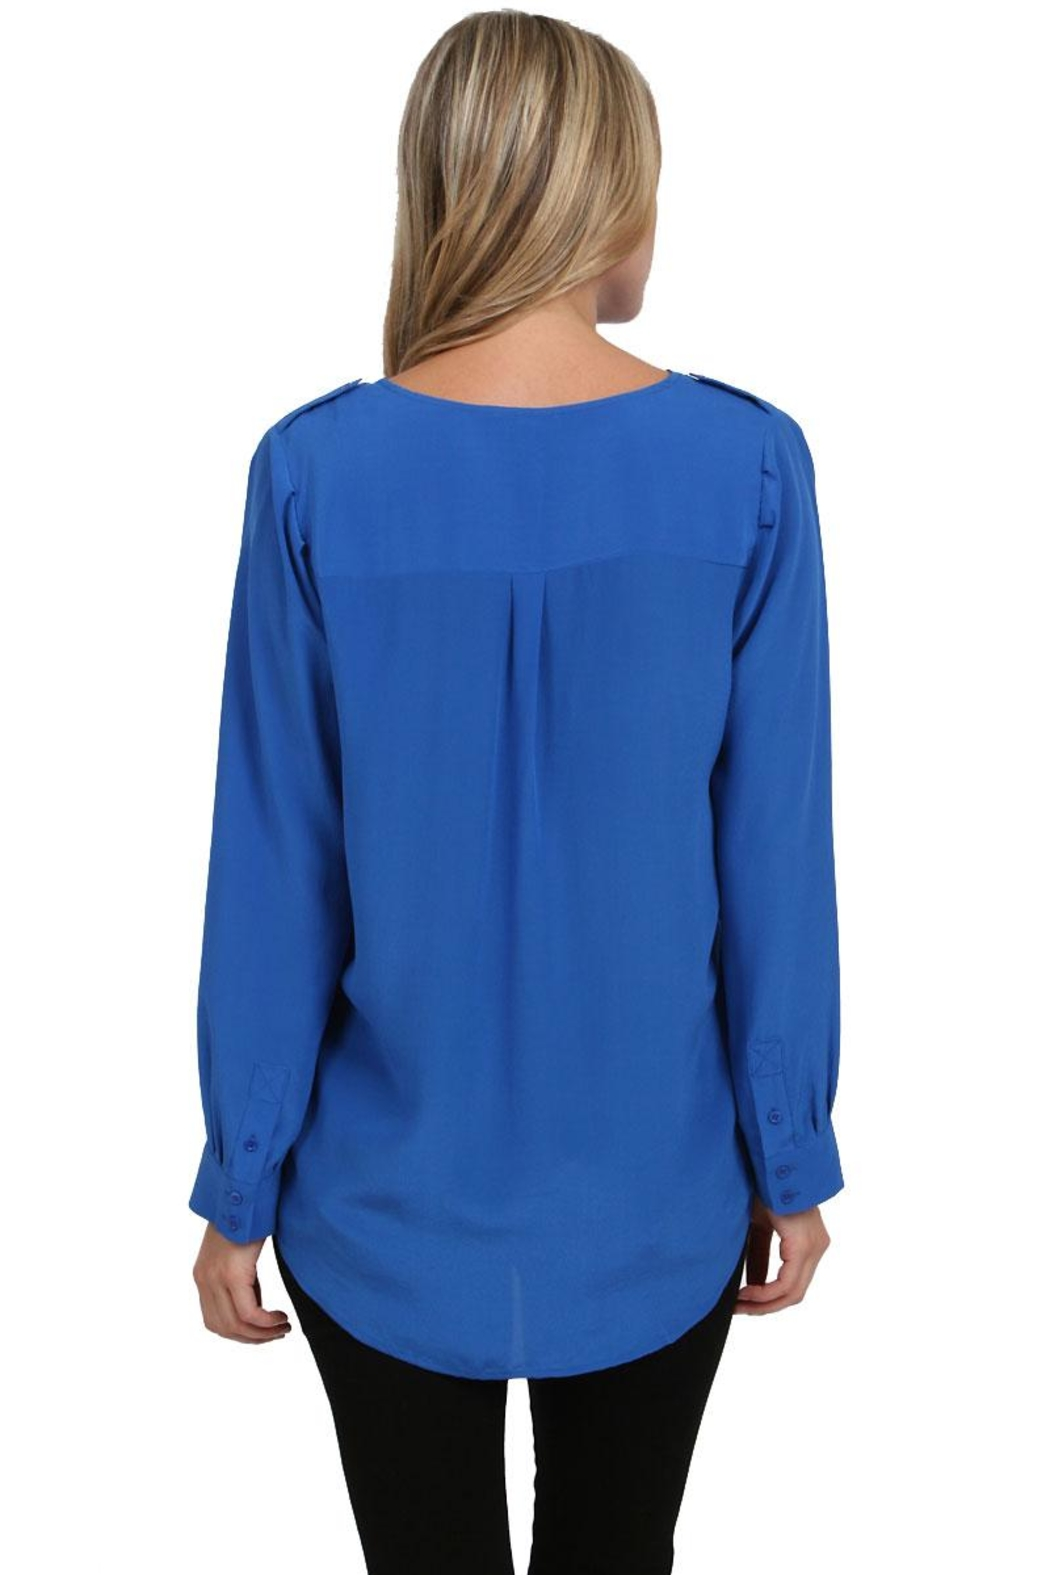 Joie Mystic B Blouse - Side Cropped Image